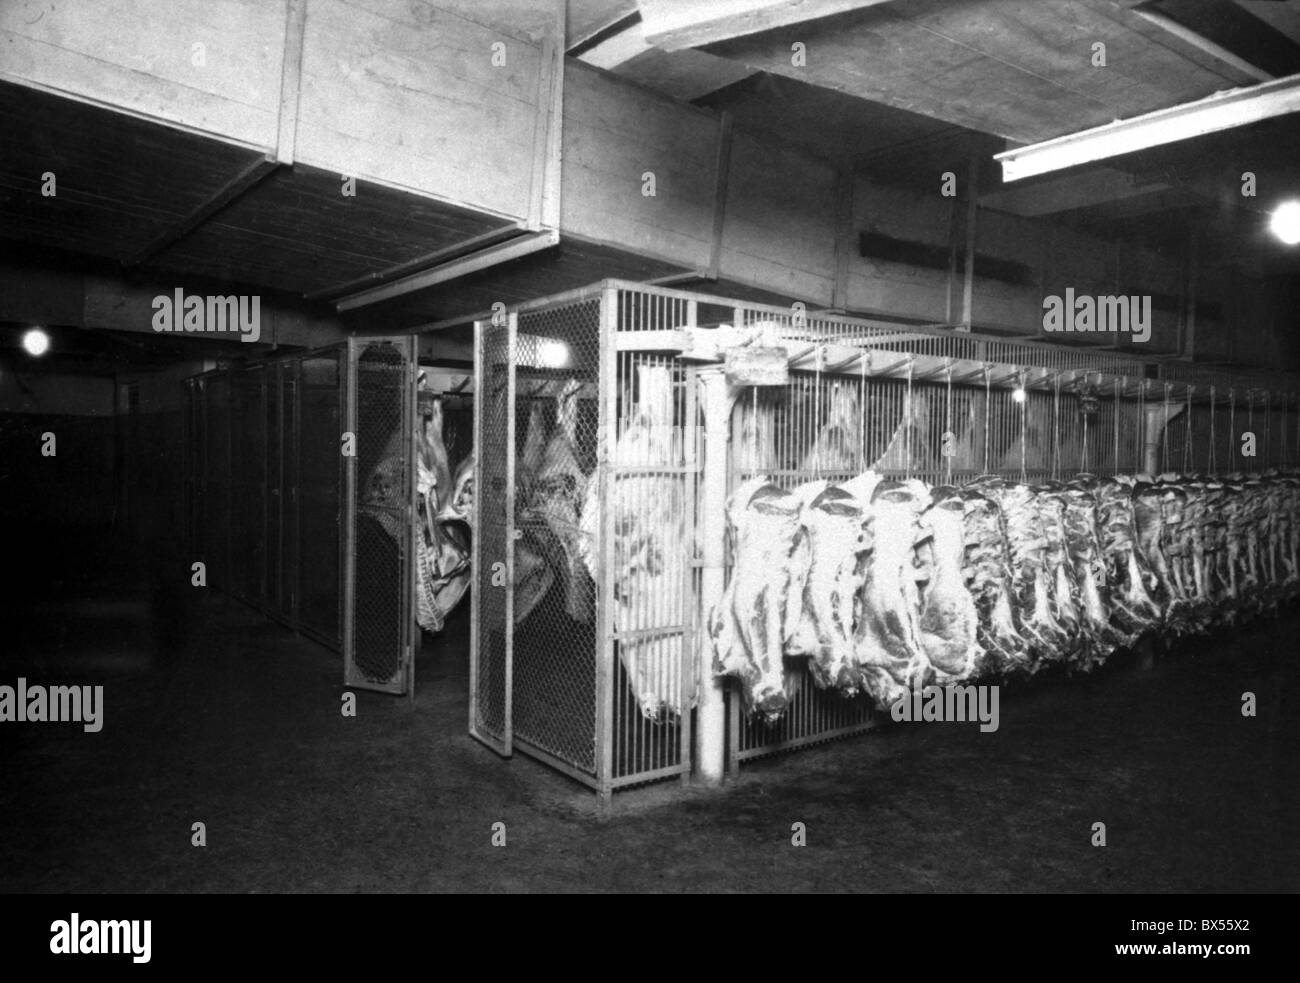 Prague 1935, vintage photograph of slaughter house at Holesovice. - Stock Image